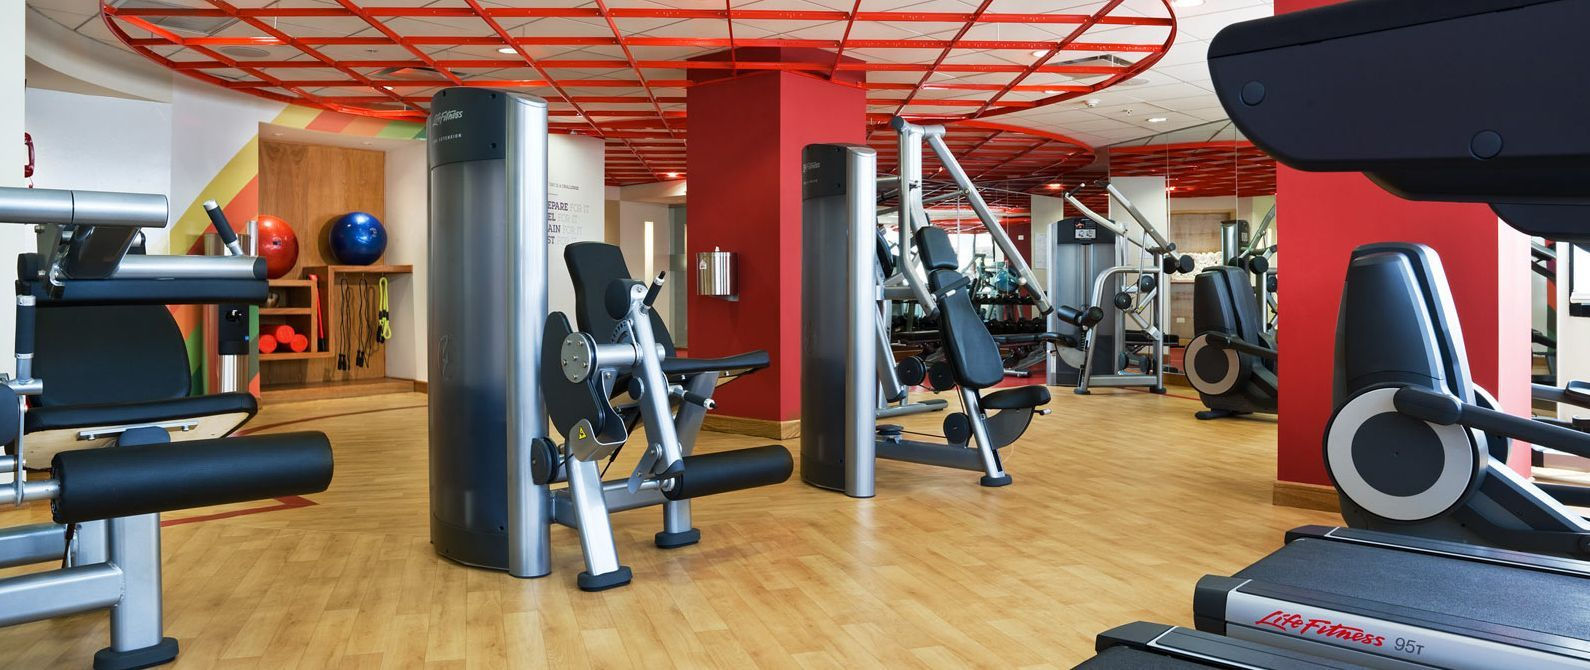 Sheraton Santo Domingo - Sheraton Fitness Center